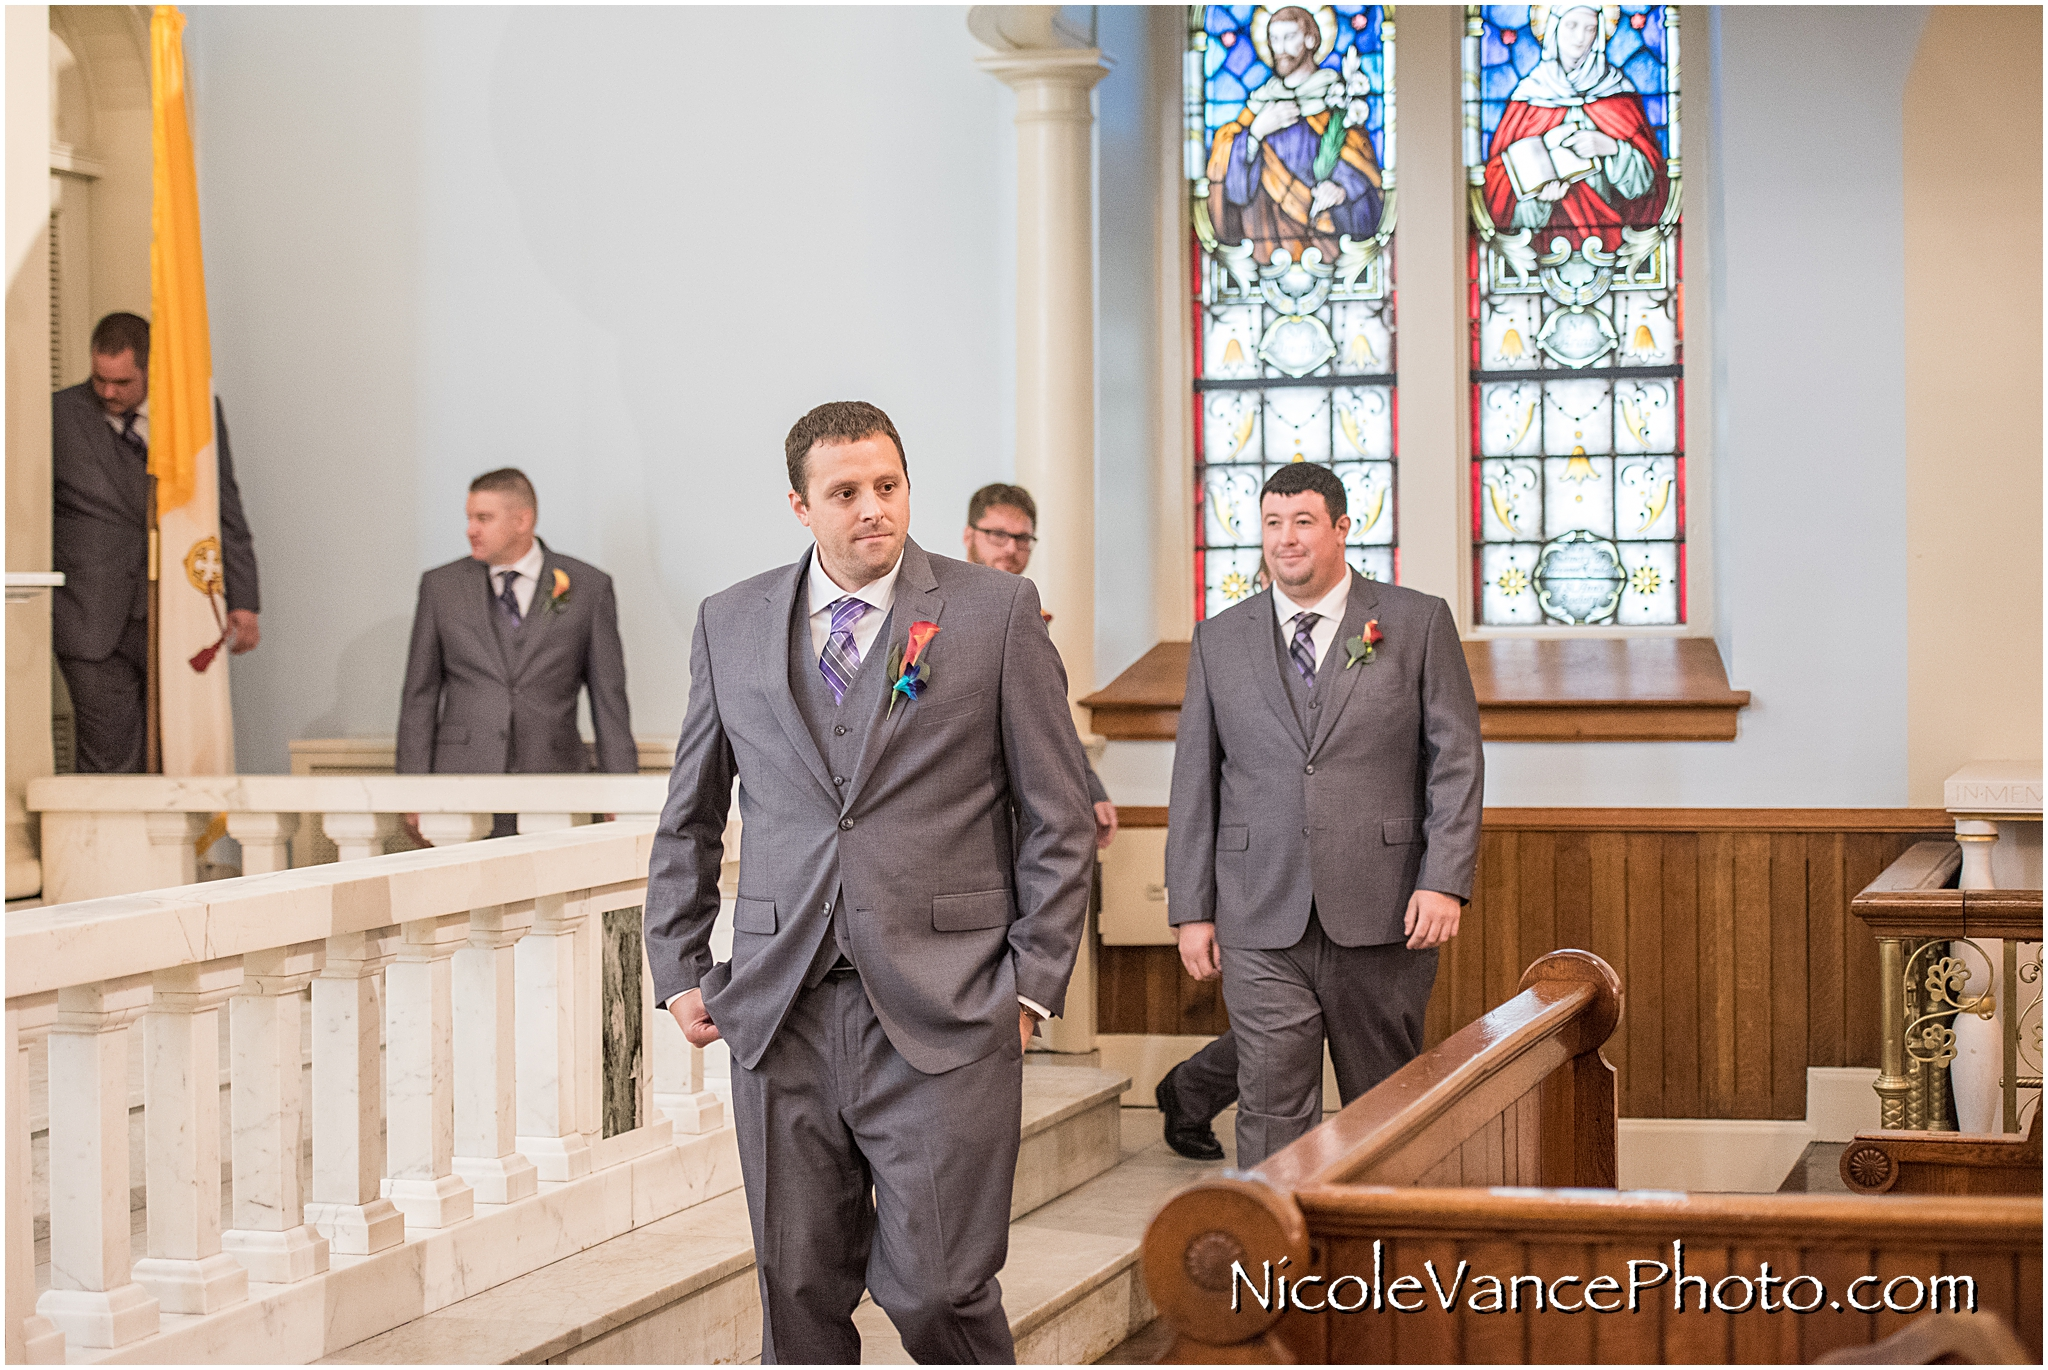 The groom makes an entrance at St Peter's Catholic Church, in Richmond VA.